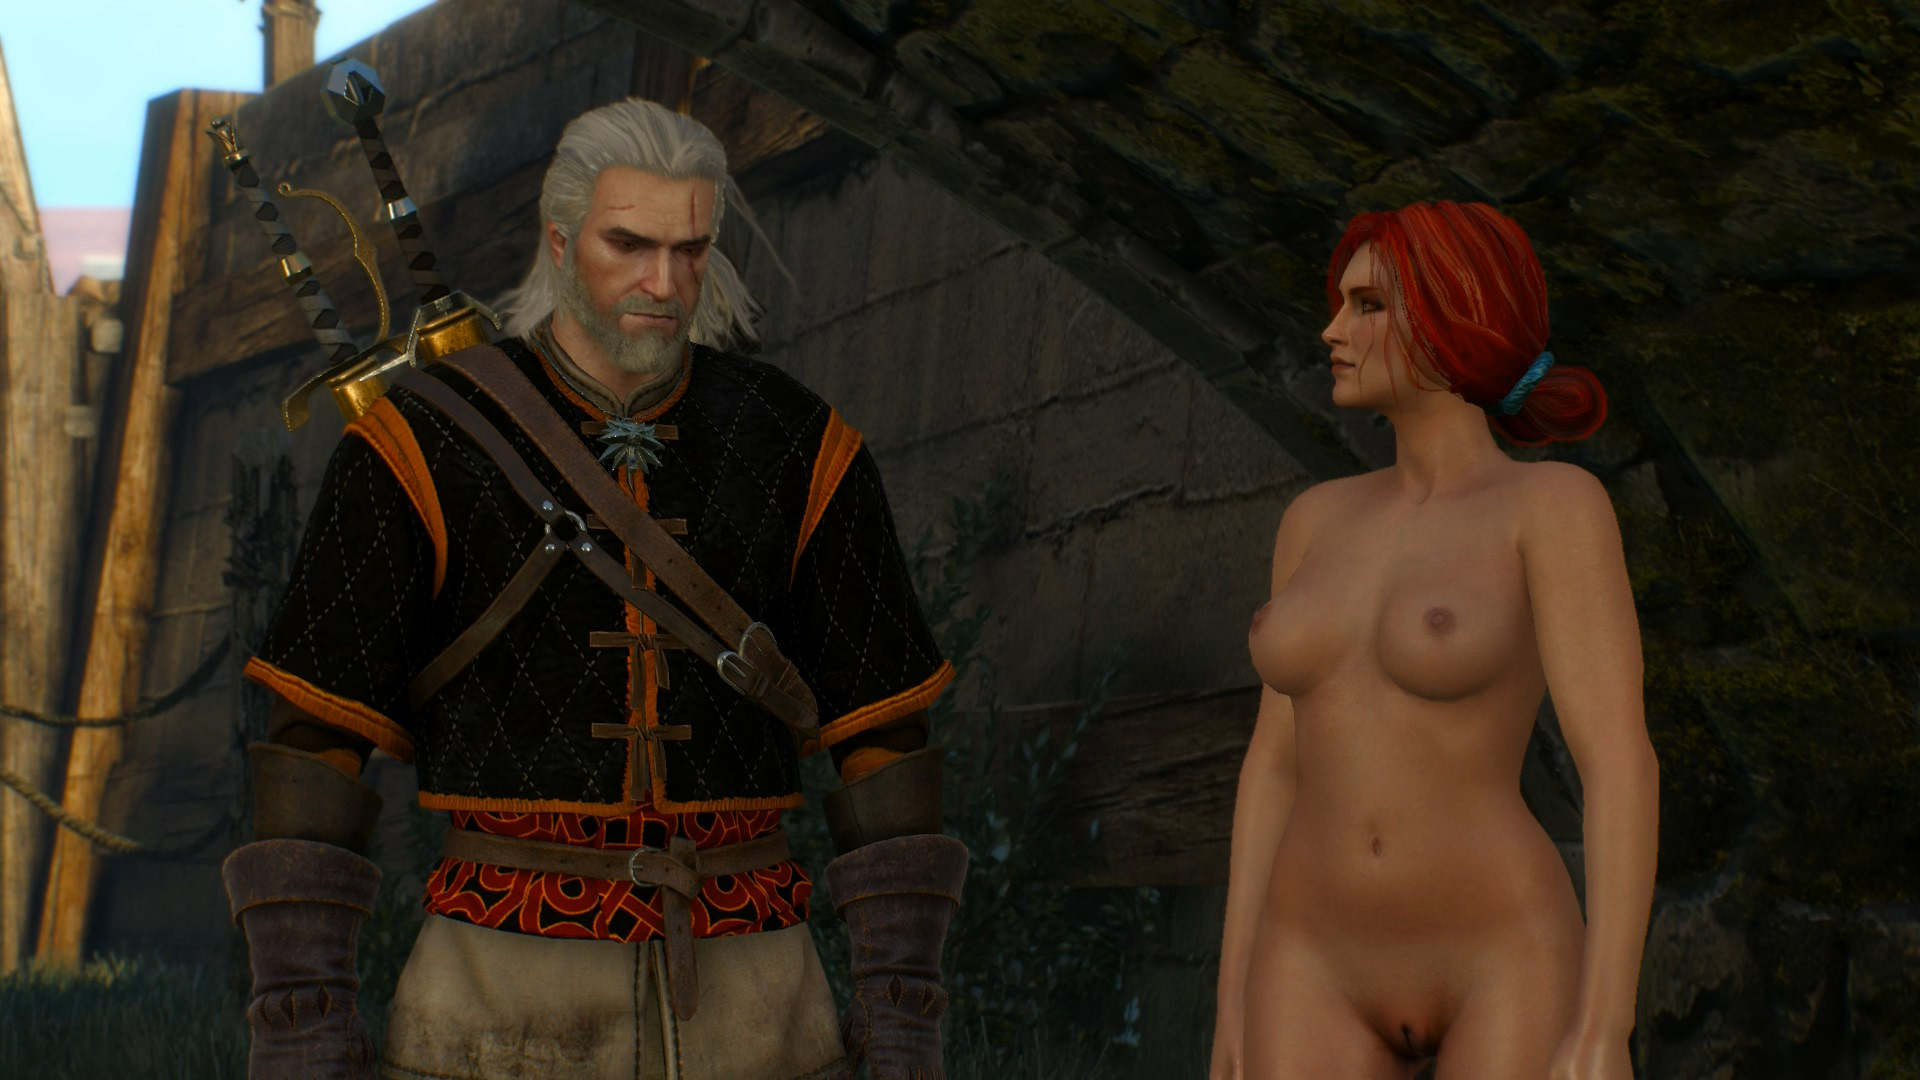 The witcher nude skins, anal balloon pump video